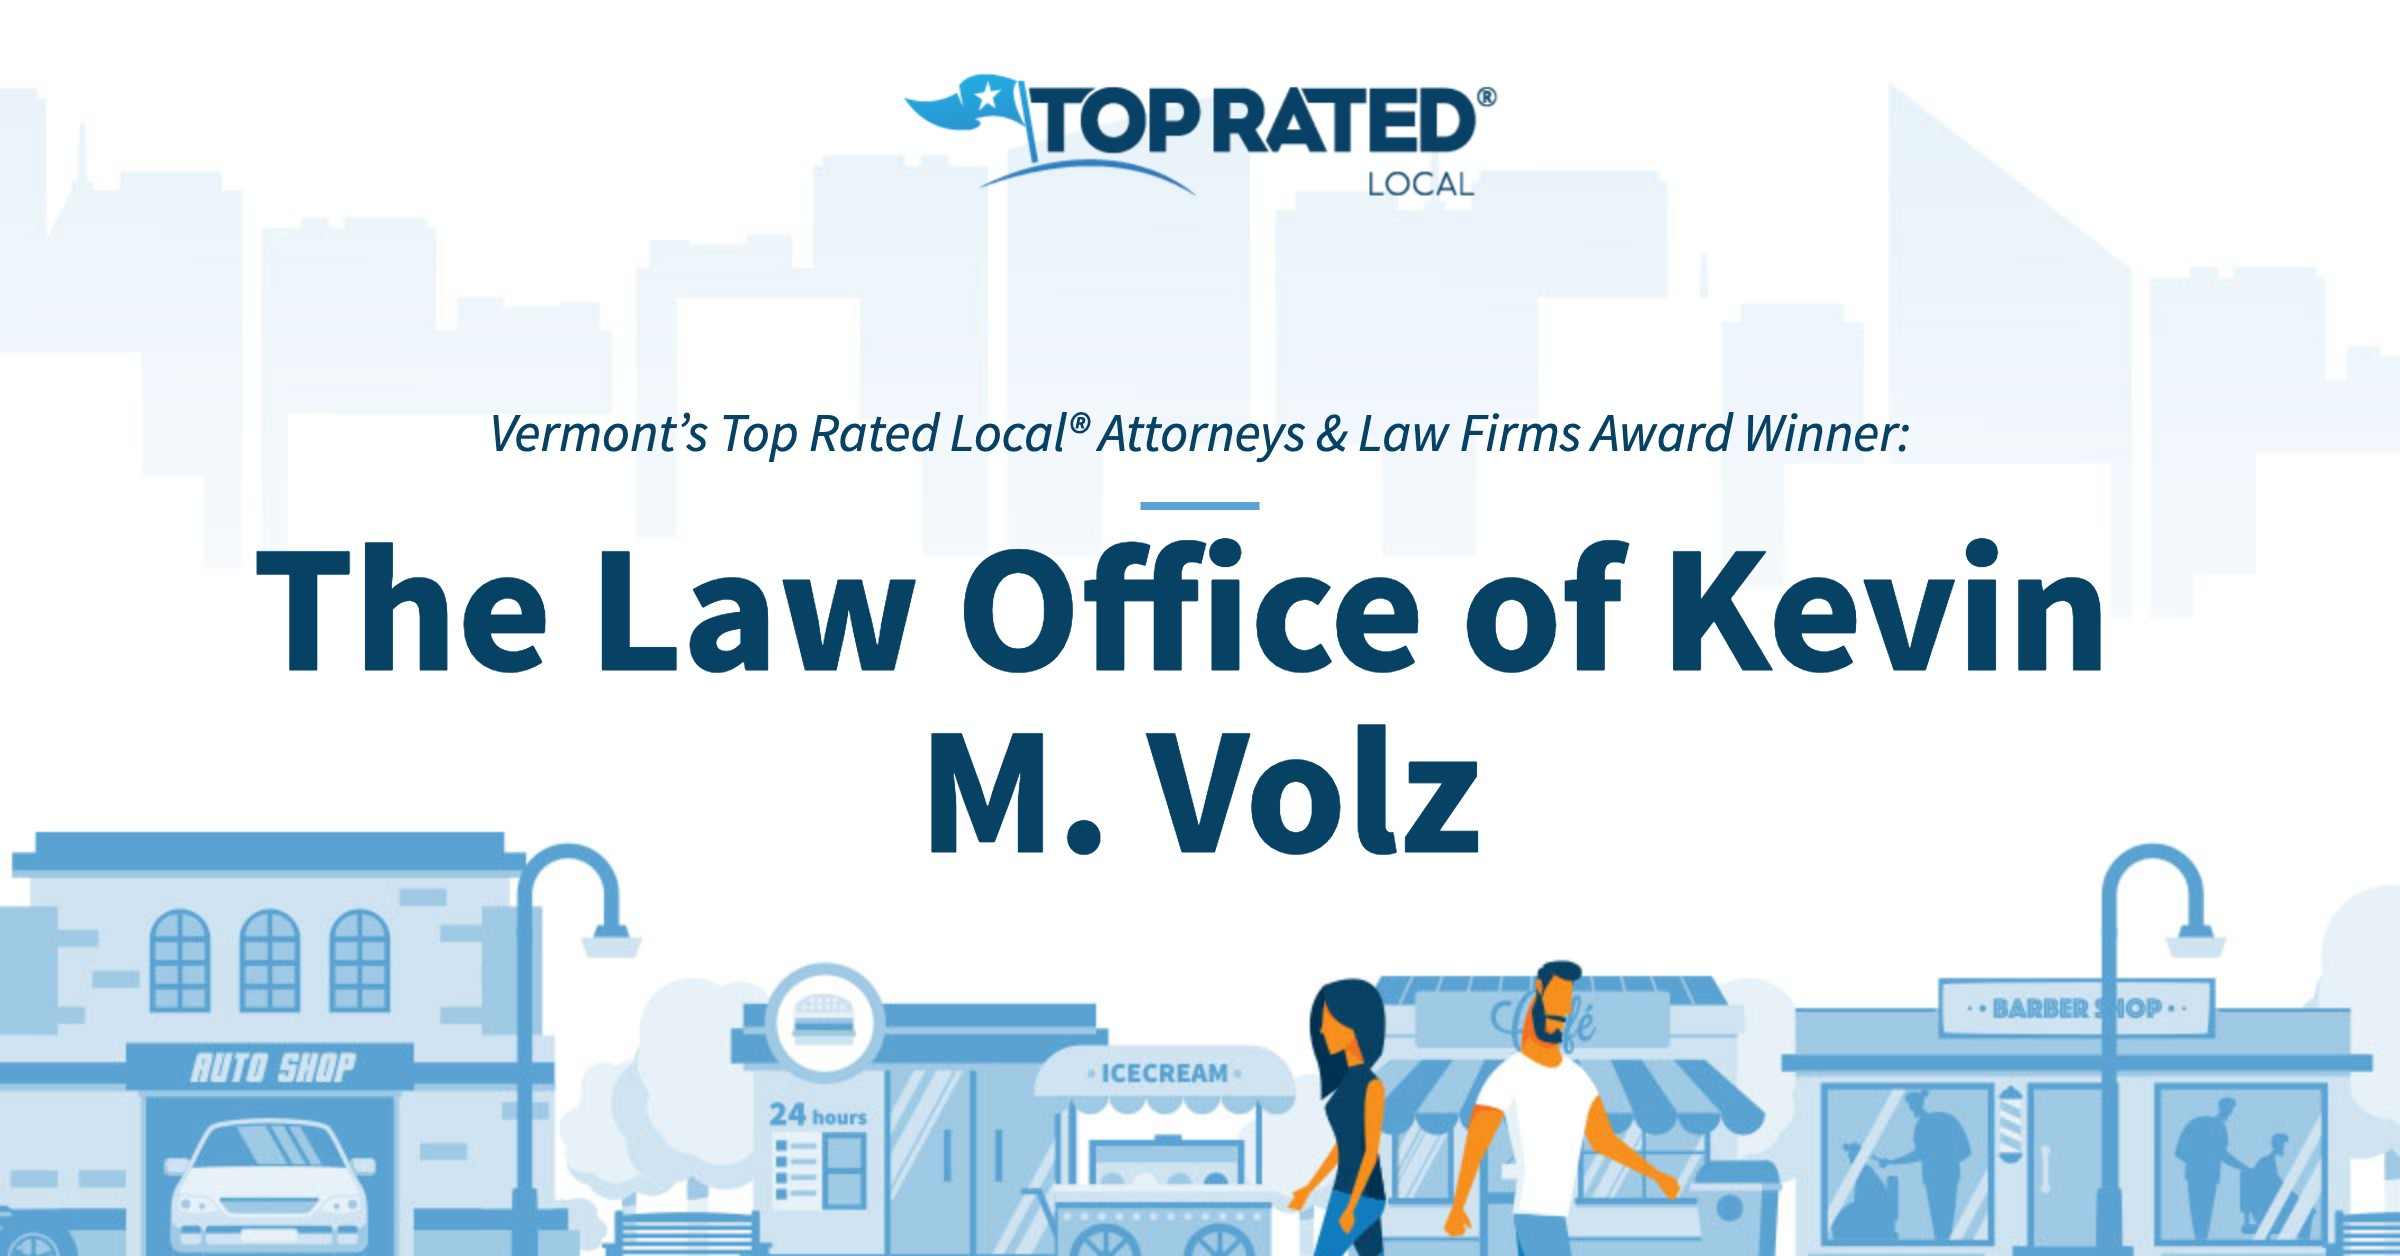 Vermont's Top Rated Local® Attorneys & Law Firms Award Winner: The Law Office of Kevin M. Volz